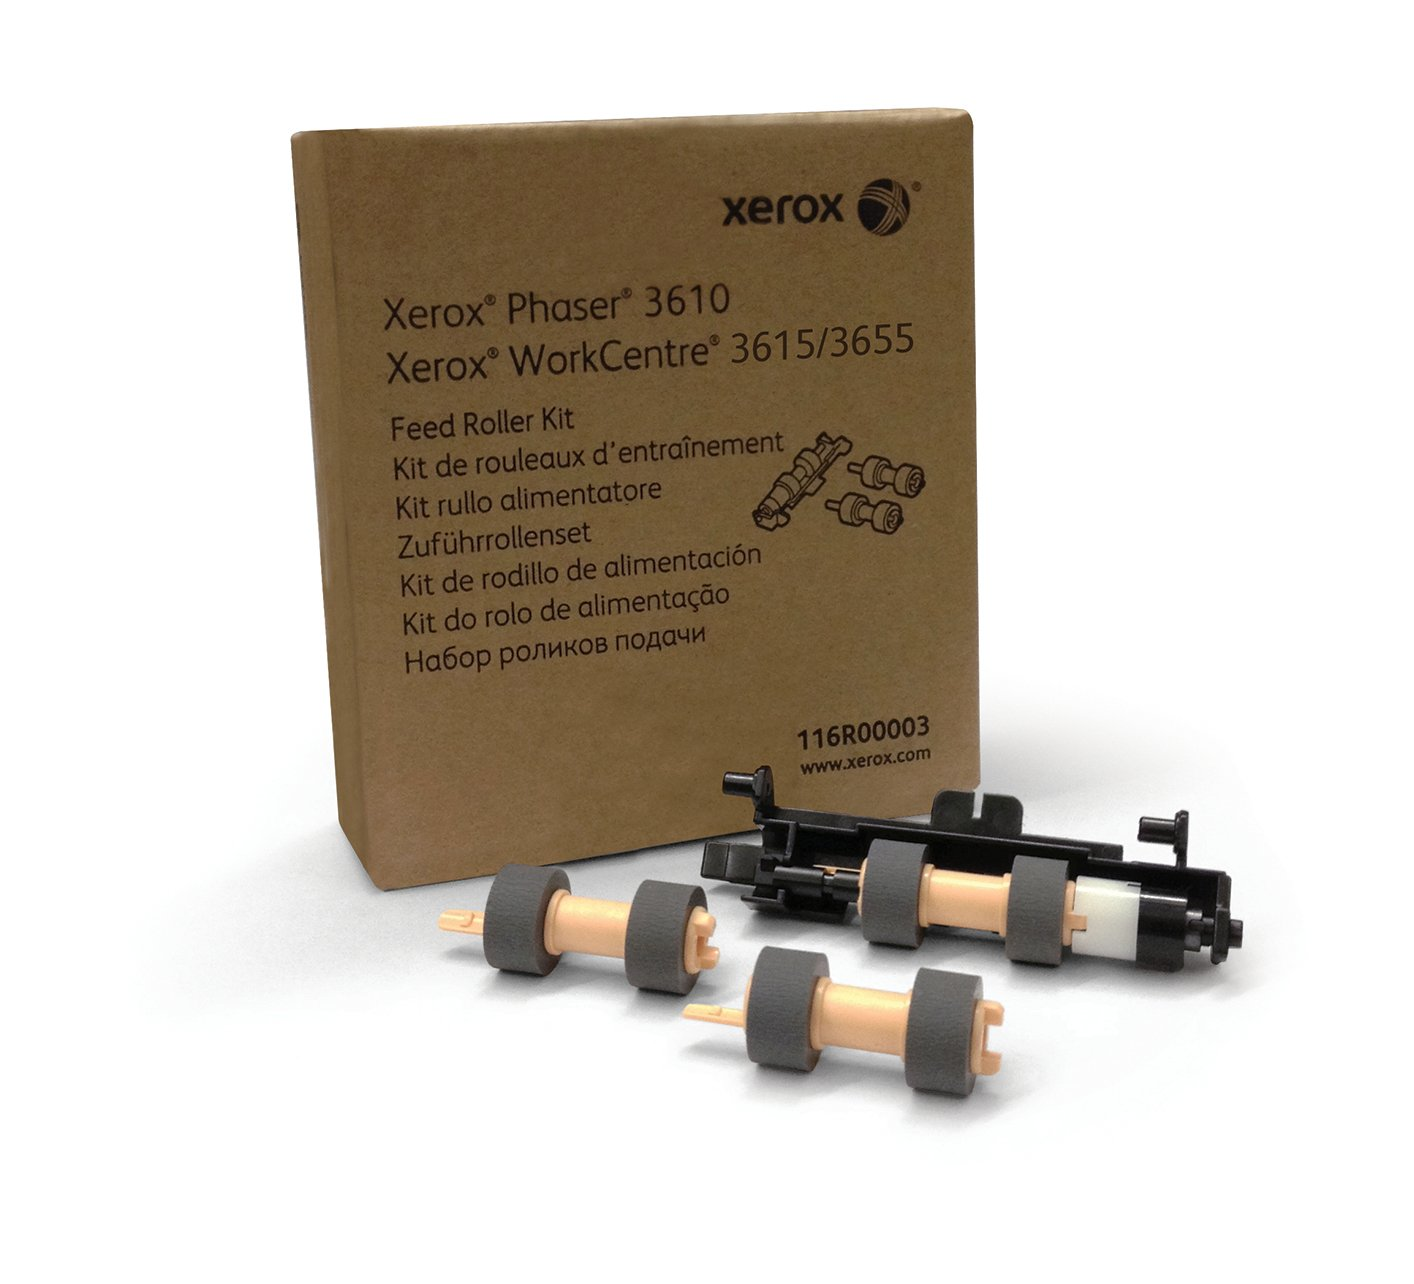 Genuine Xerox Paper Feed Roller Kit for the Xerox Phaser 3610 or WorkCentre 3615, 116R00003 by Xerox (Image #2)